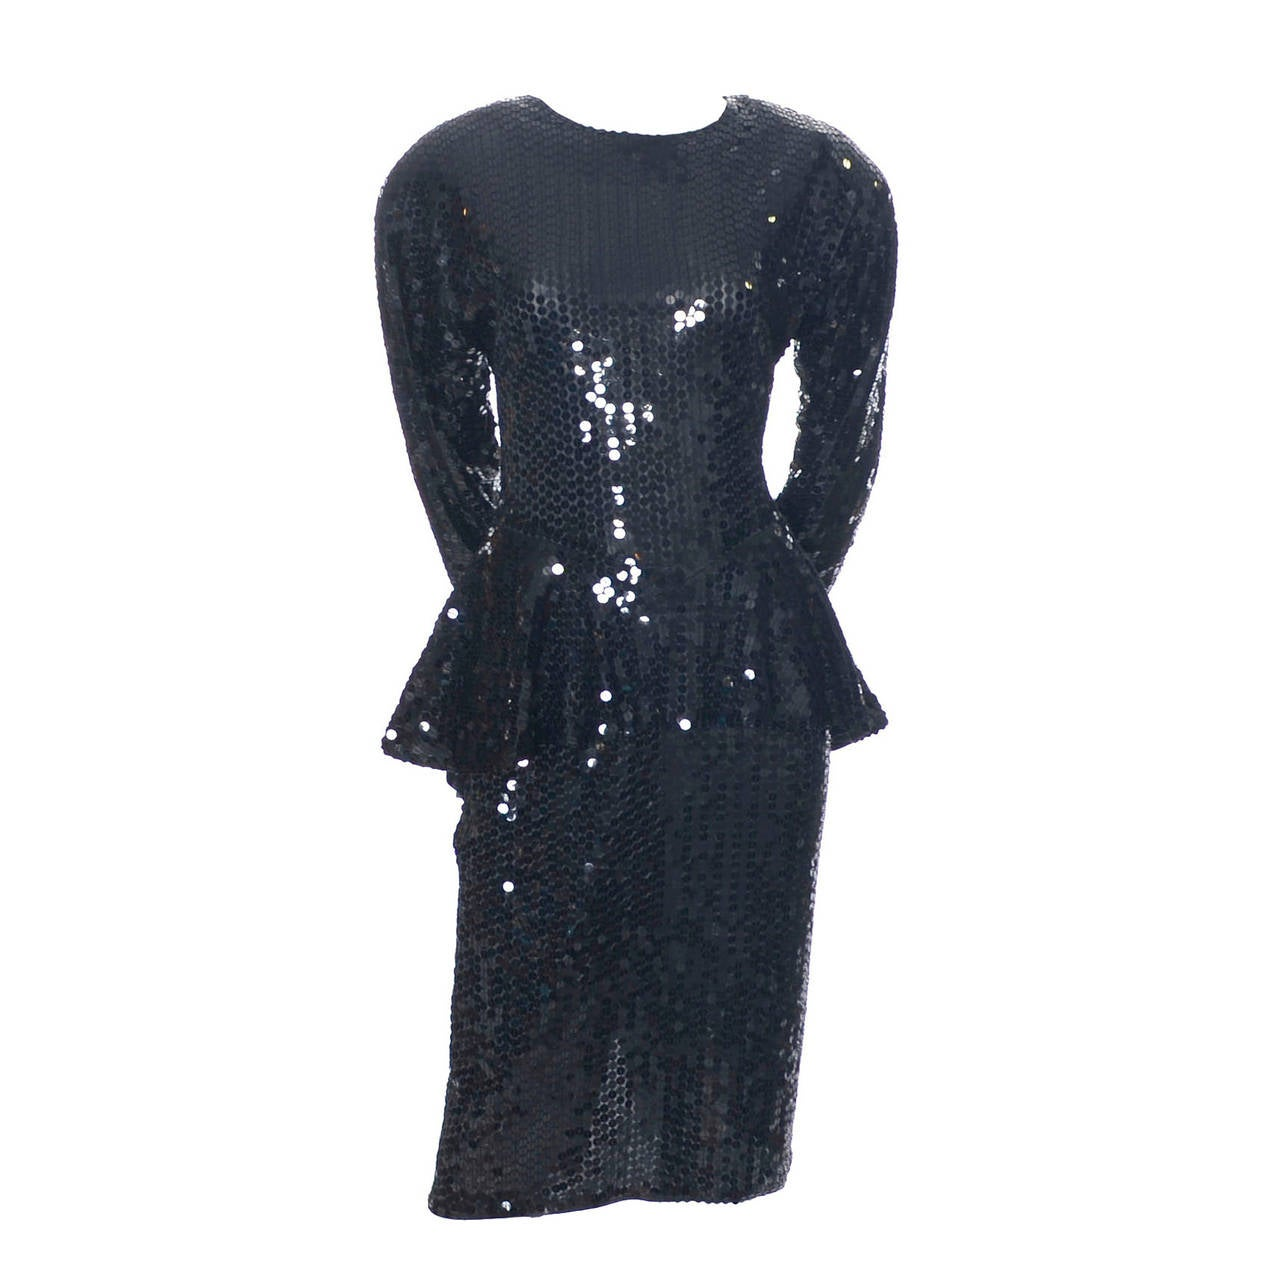 Oleg Cassini Vintage Dress Black Sequins Peplum 1980s Evening